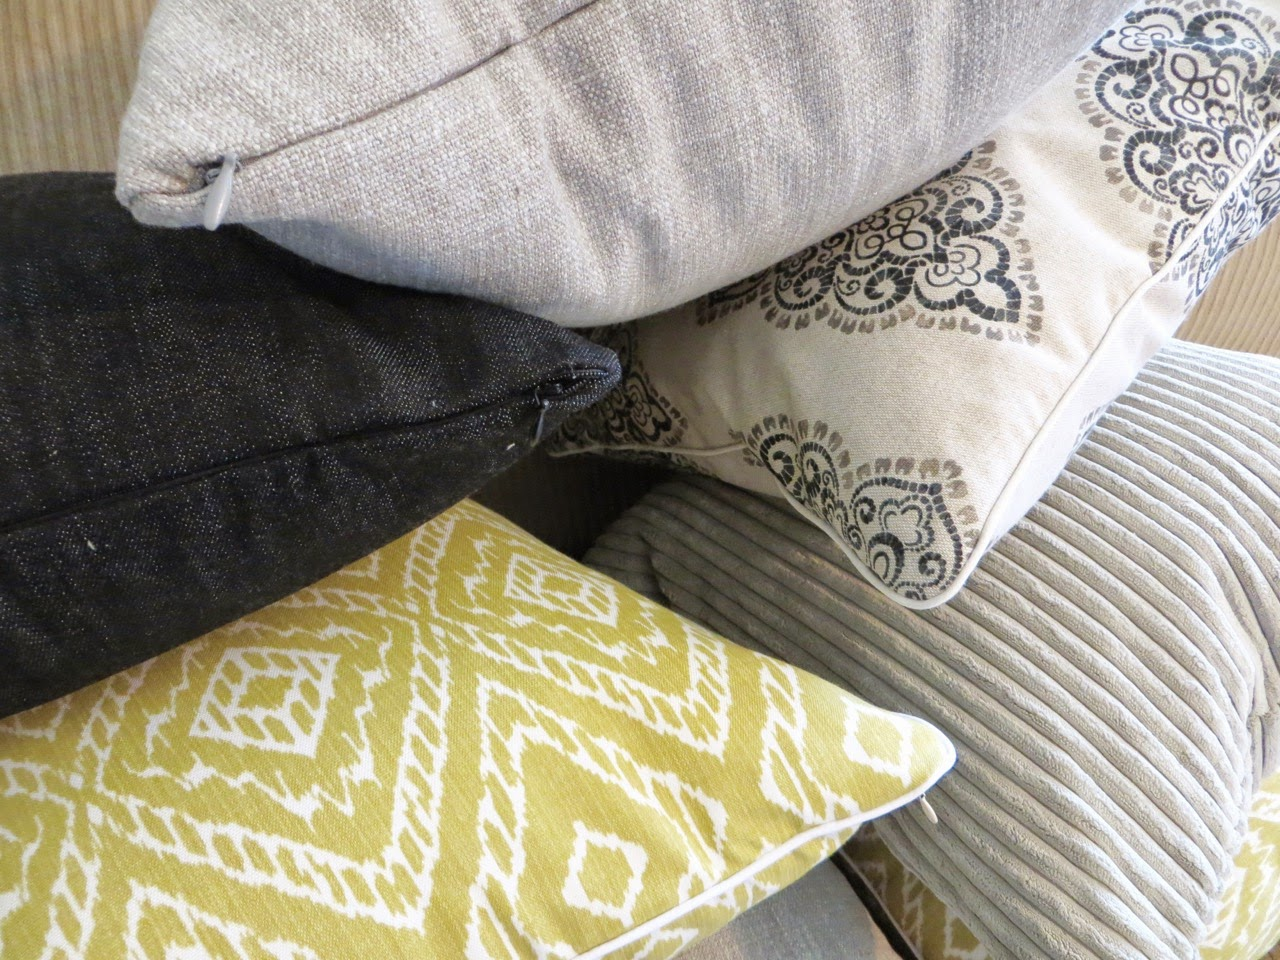 Sewing Throw Pillow With Zipper And Piping : Throw Pillow Cover Sewing Tutorial (A How-to for Invisible Zippers & Piping)! The Project Lady